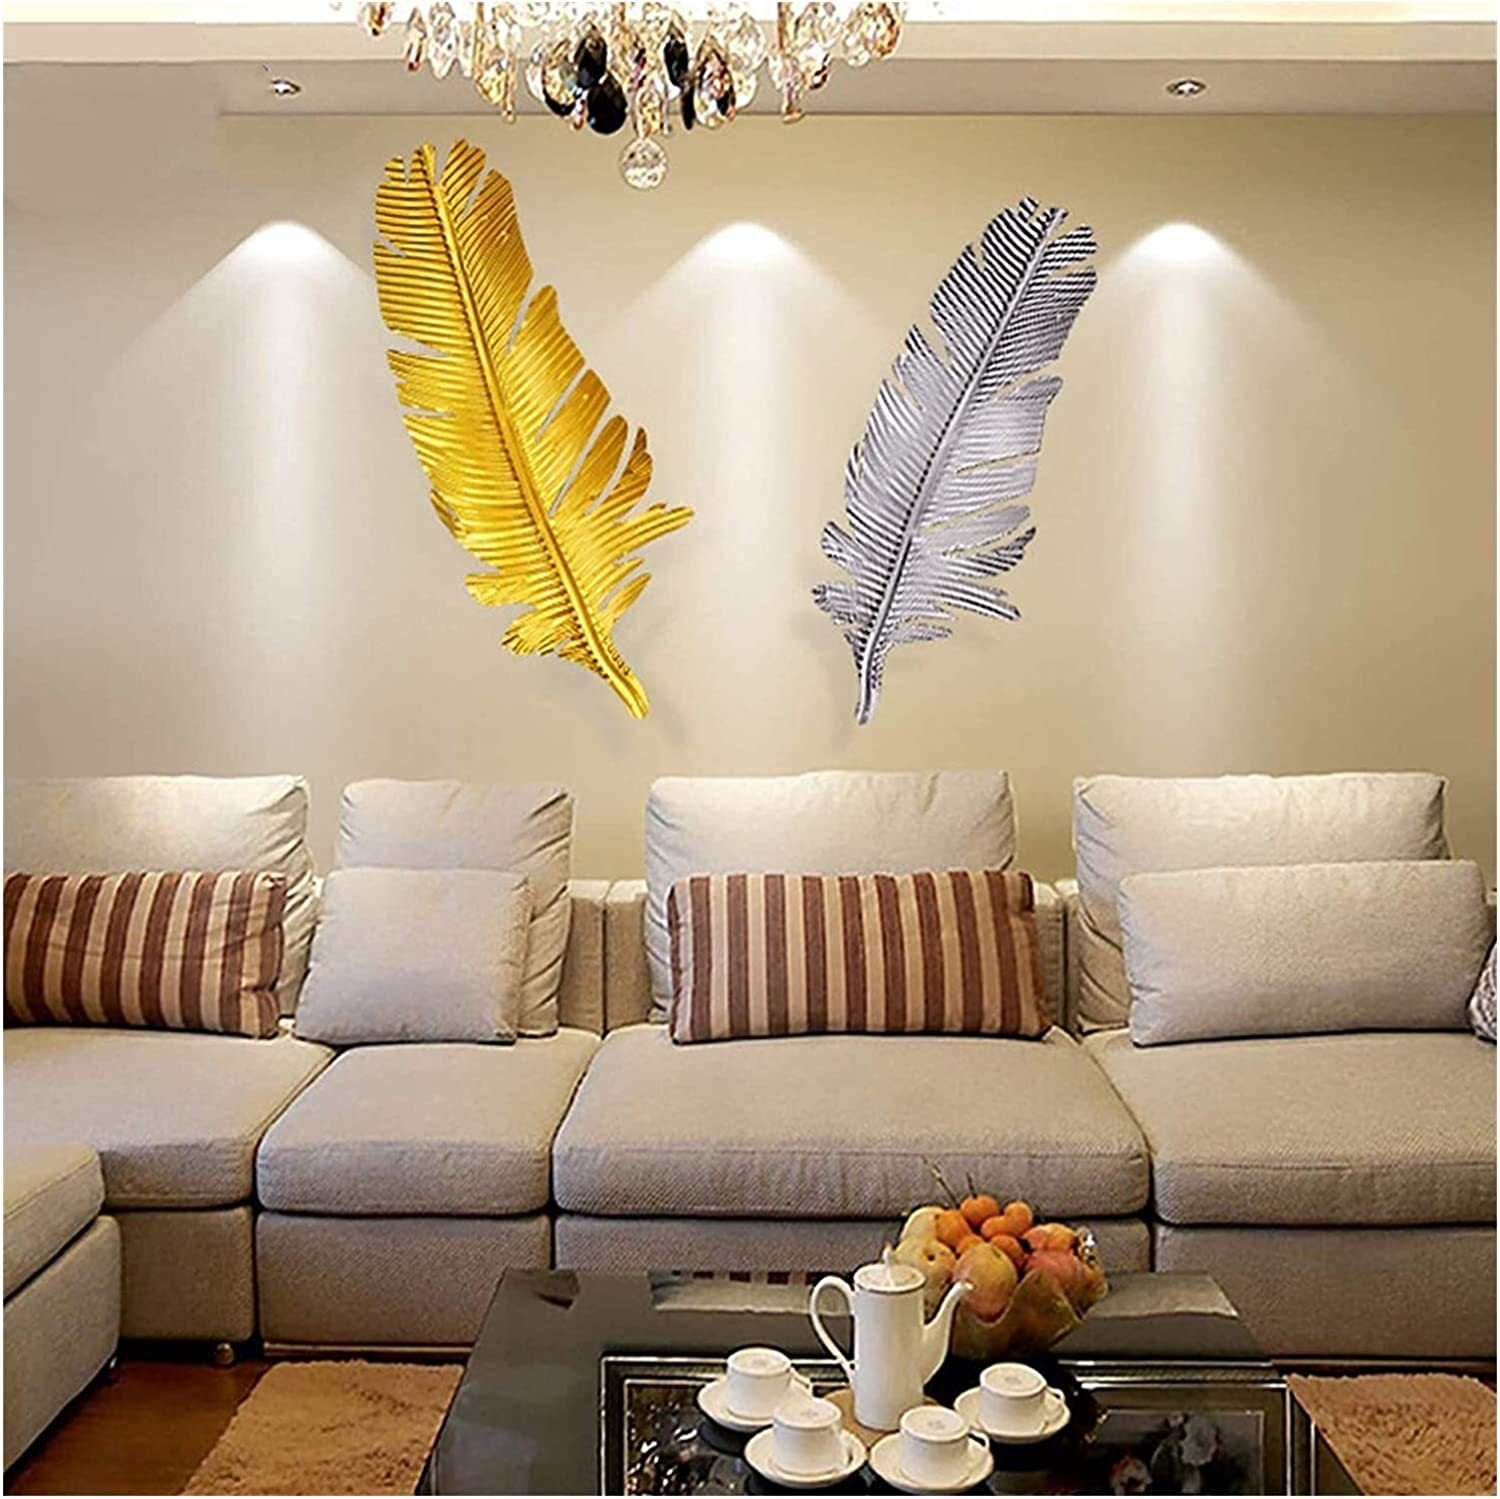 JWBB 3D Metal Feather Wall Art Decor,Hanging Wall Sculpture Decoration,Wall Mounted Wall Statue,Creative Contemporary Artwork Ornament Durable Smooth Indoor/Outdoor Entryway Ornaments,Silver 21413